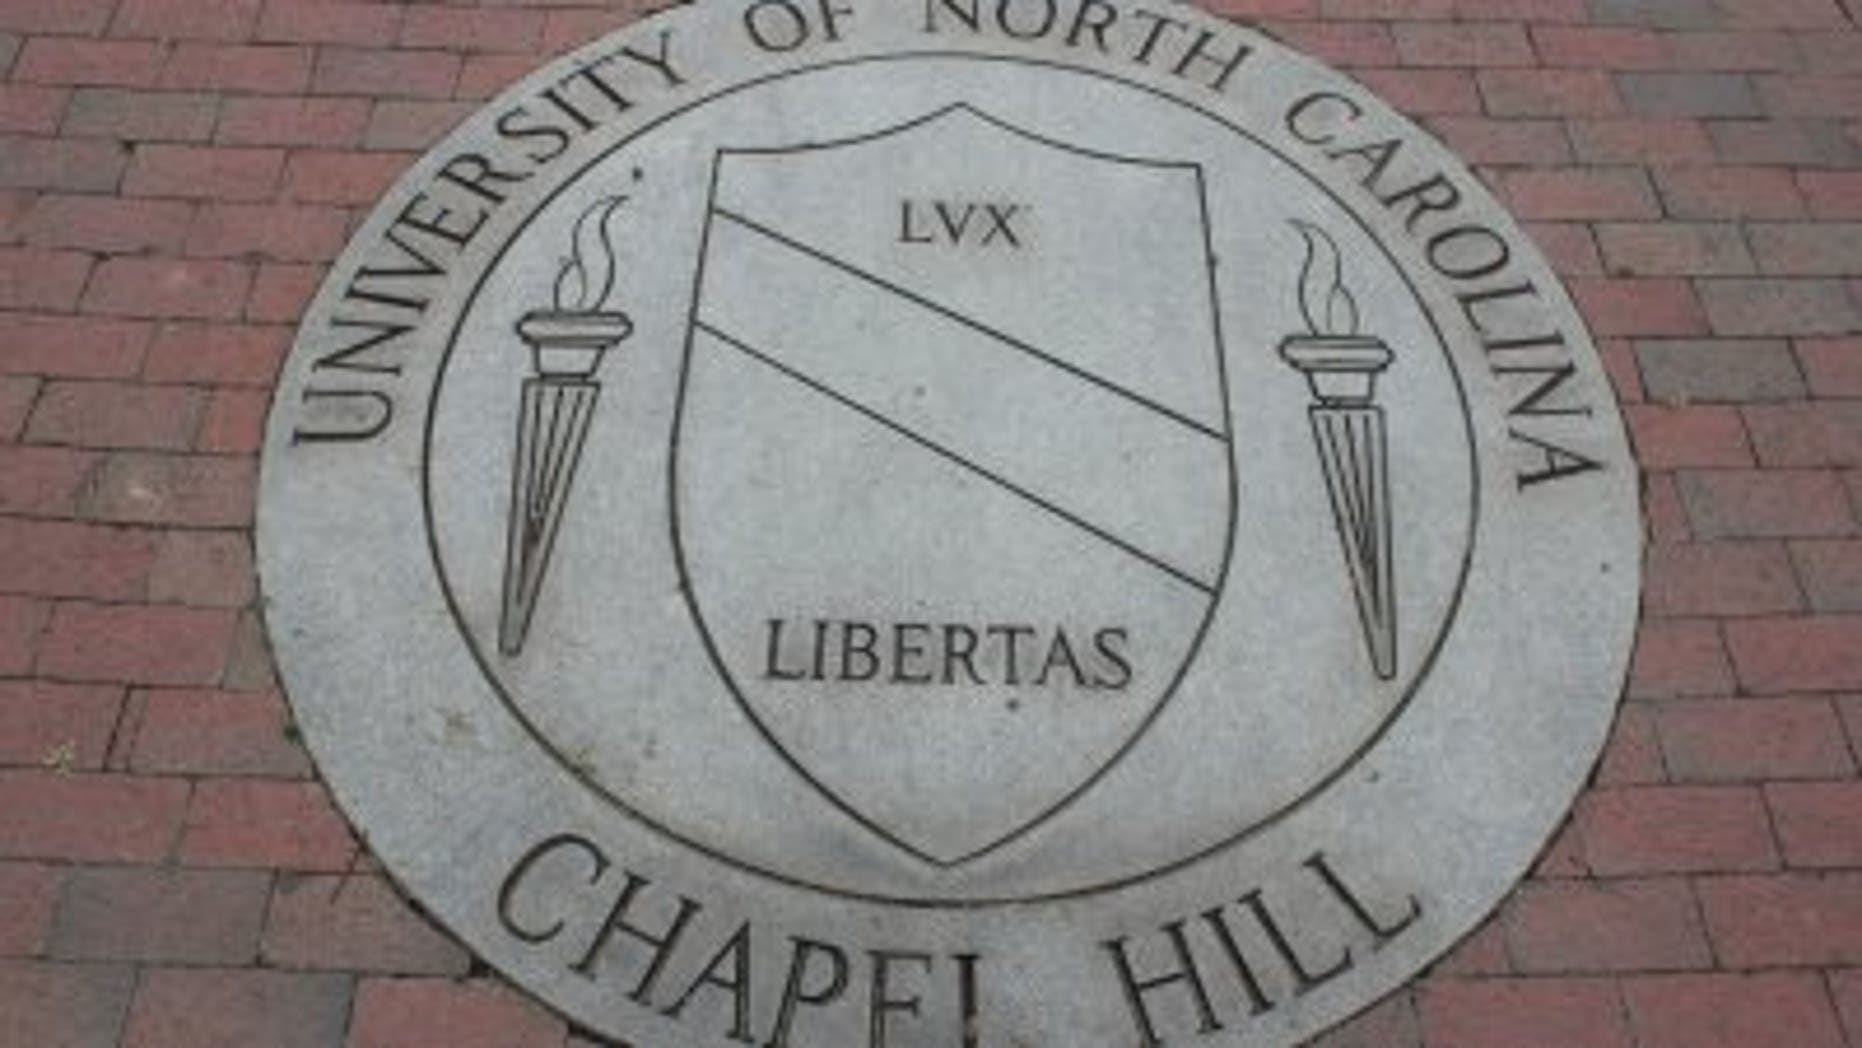 One person was found dead on campus at UNC-Chapel Hill, police said.